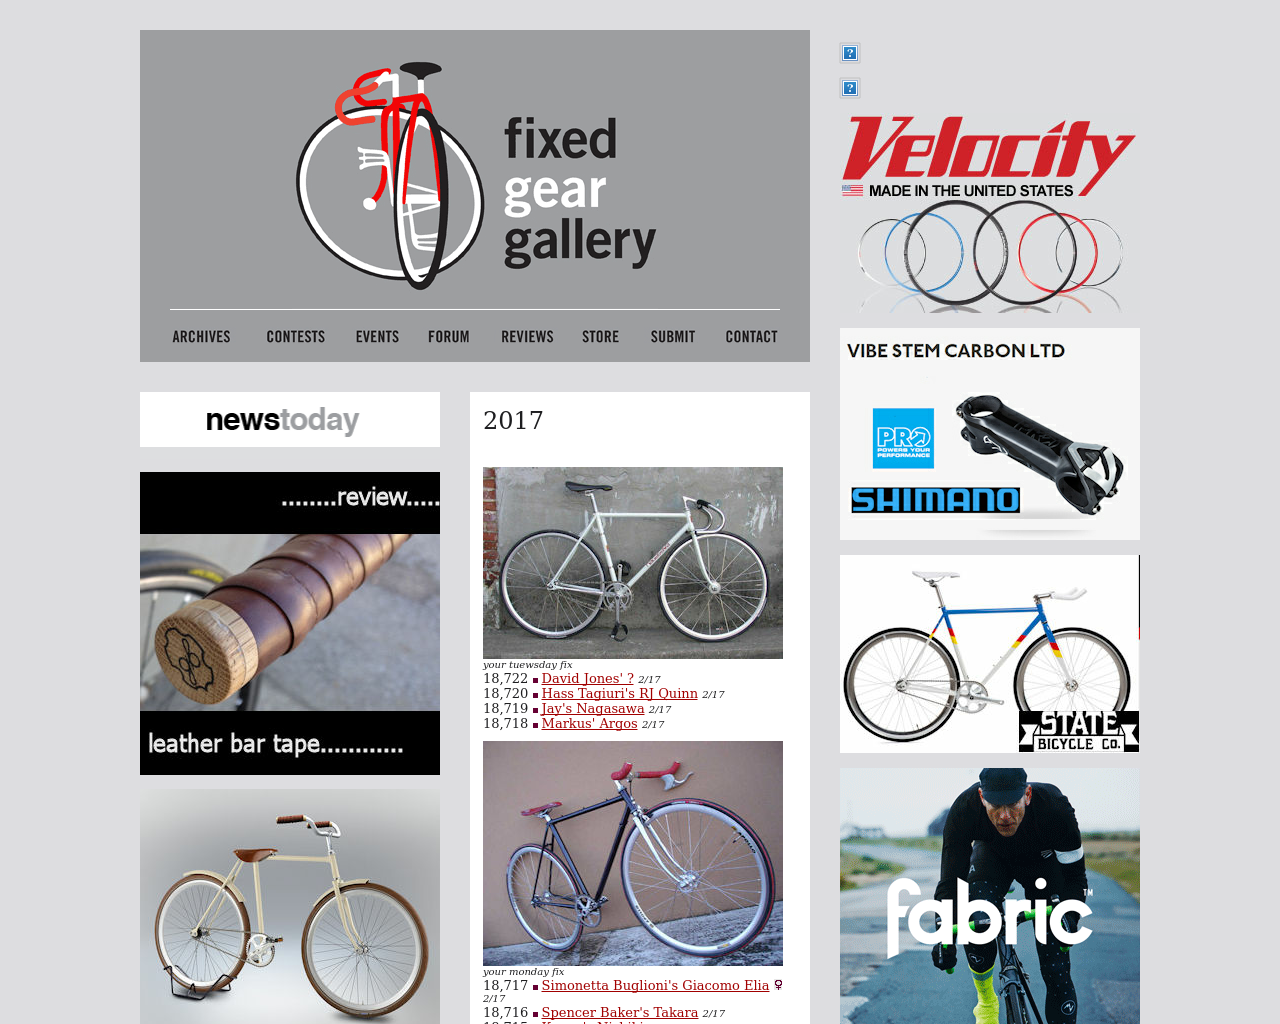 fixed-gear-gallery-Advertising-Reviews-Pricing